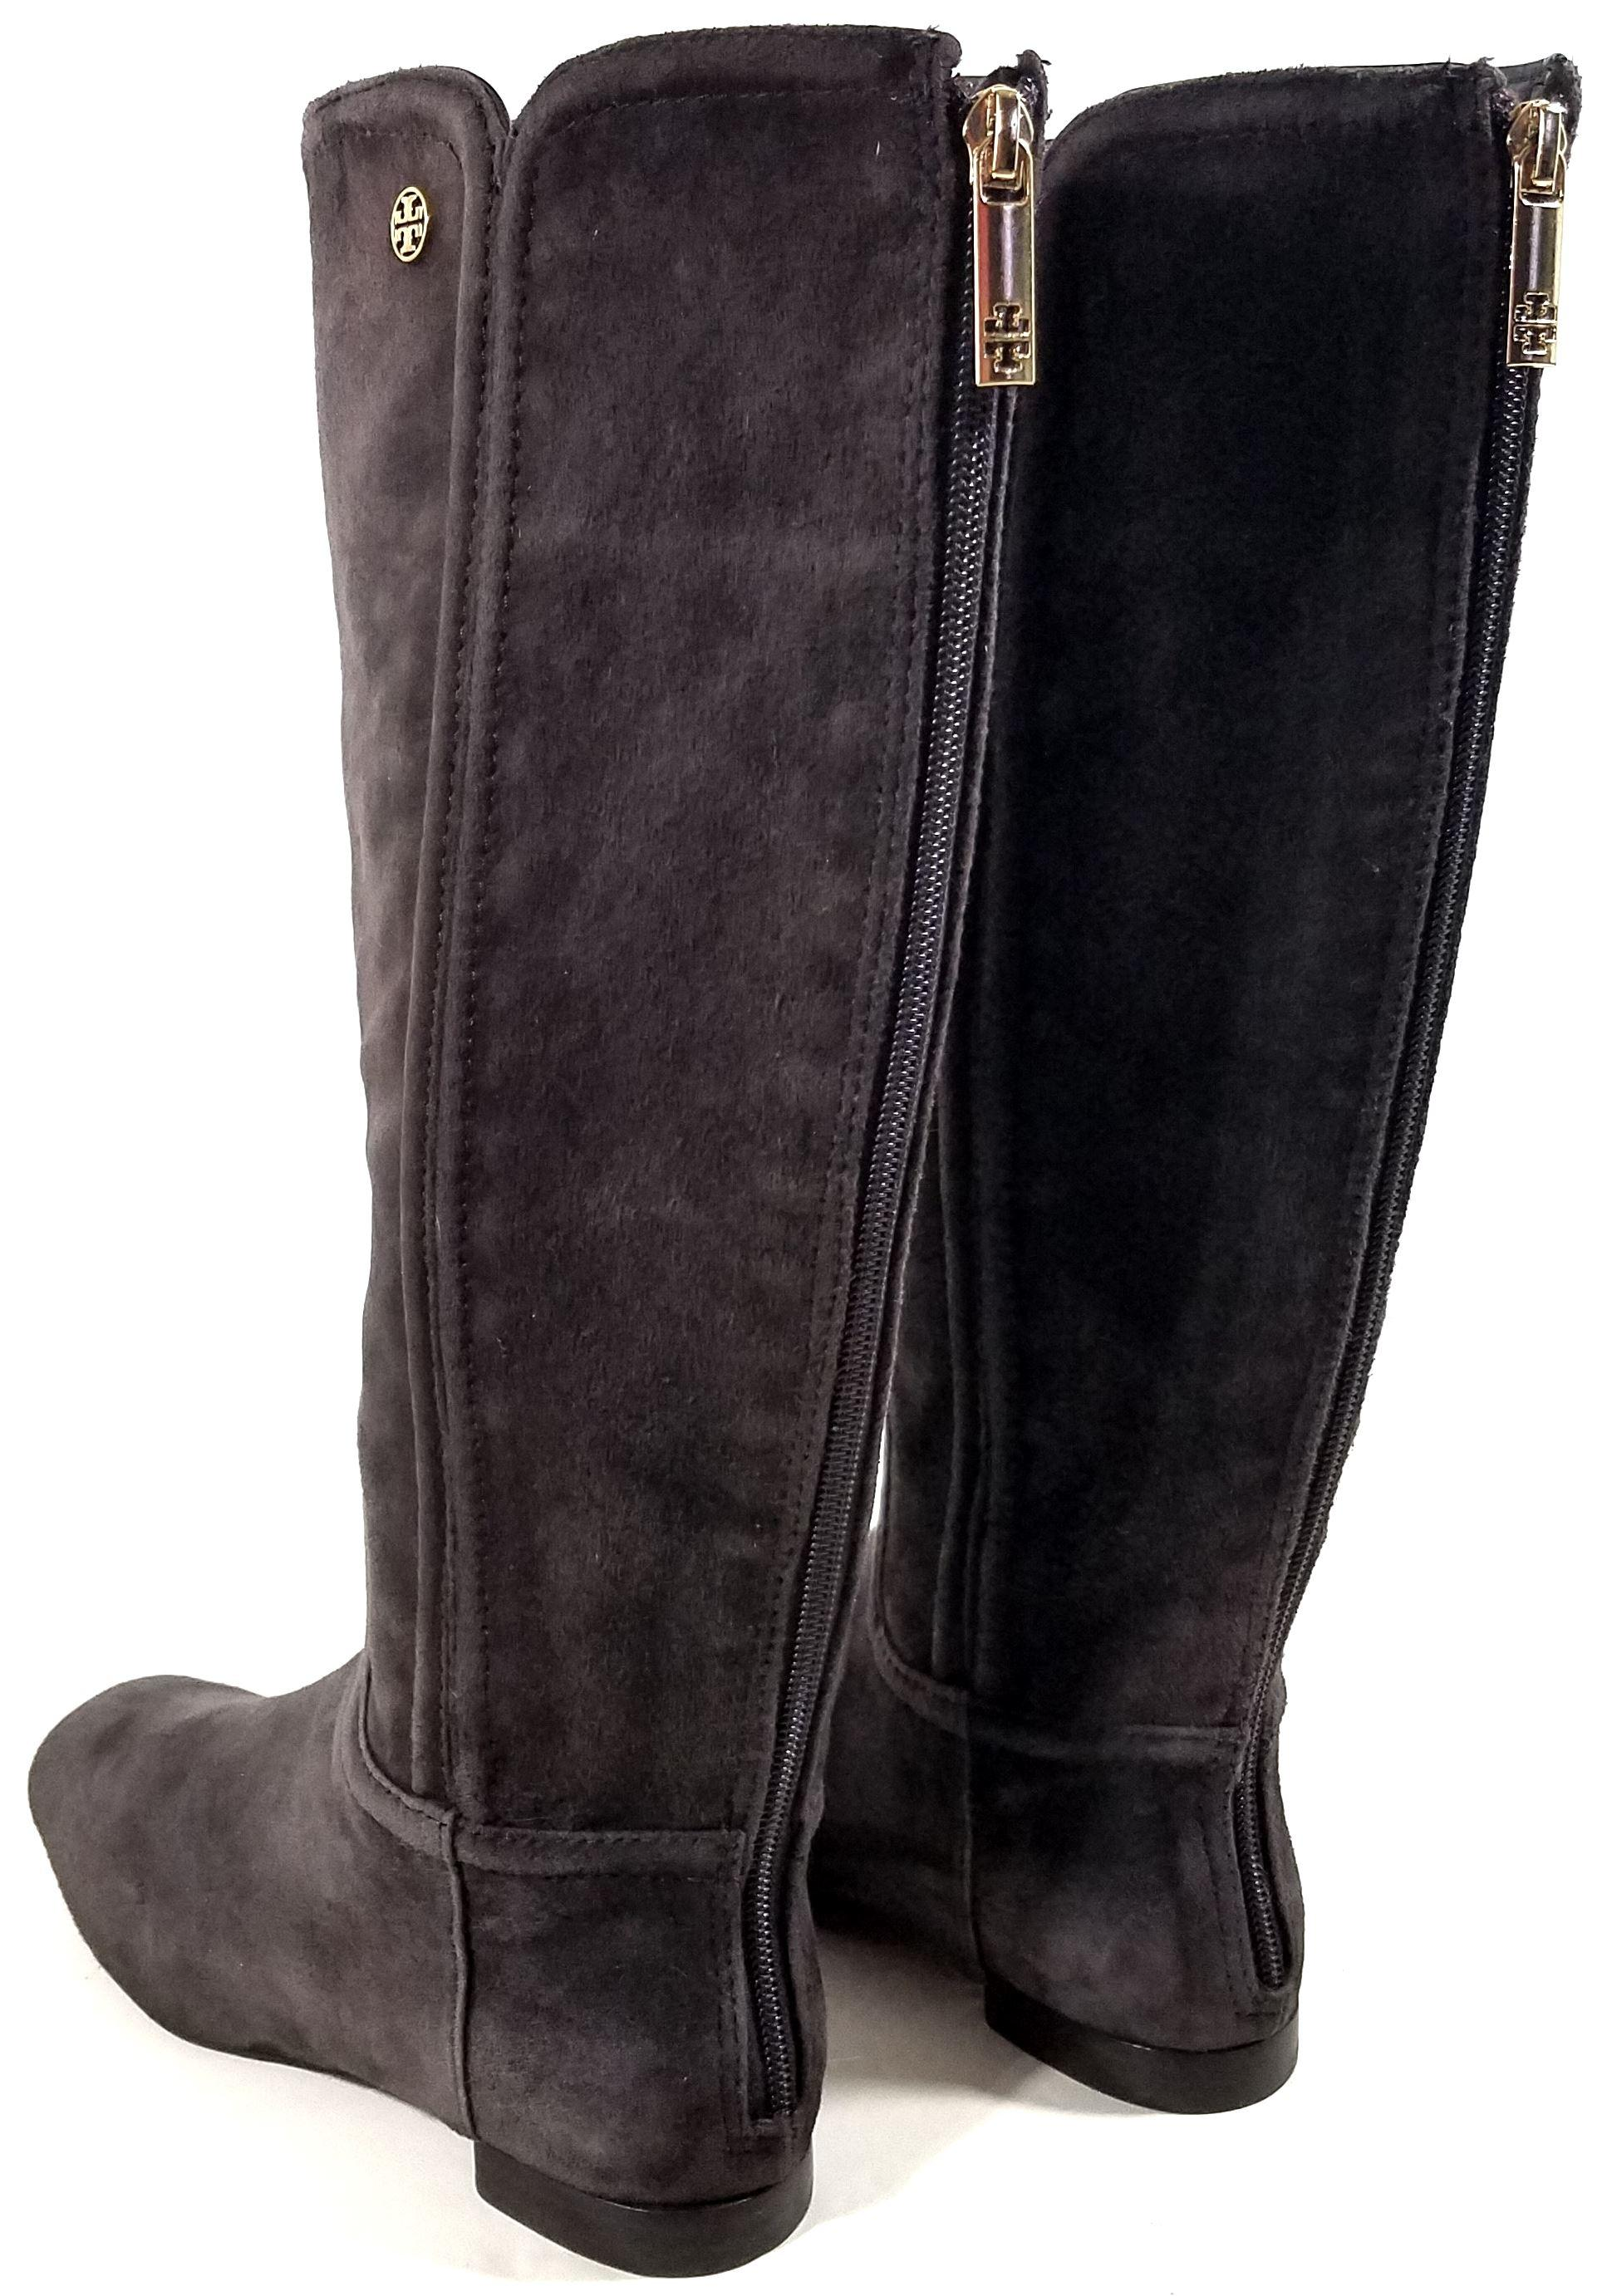 15fc5b497120 ... ebay tory burch coconut brown irene riding boots booties size us 6.5  207d8 d6228